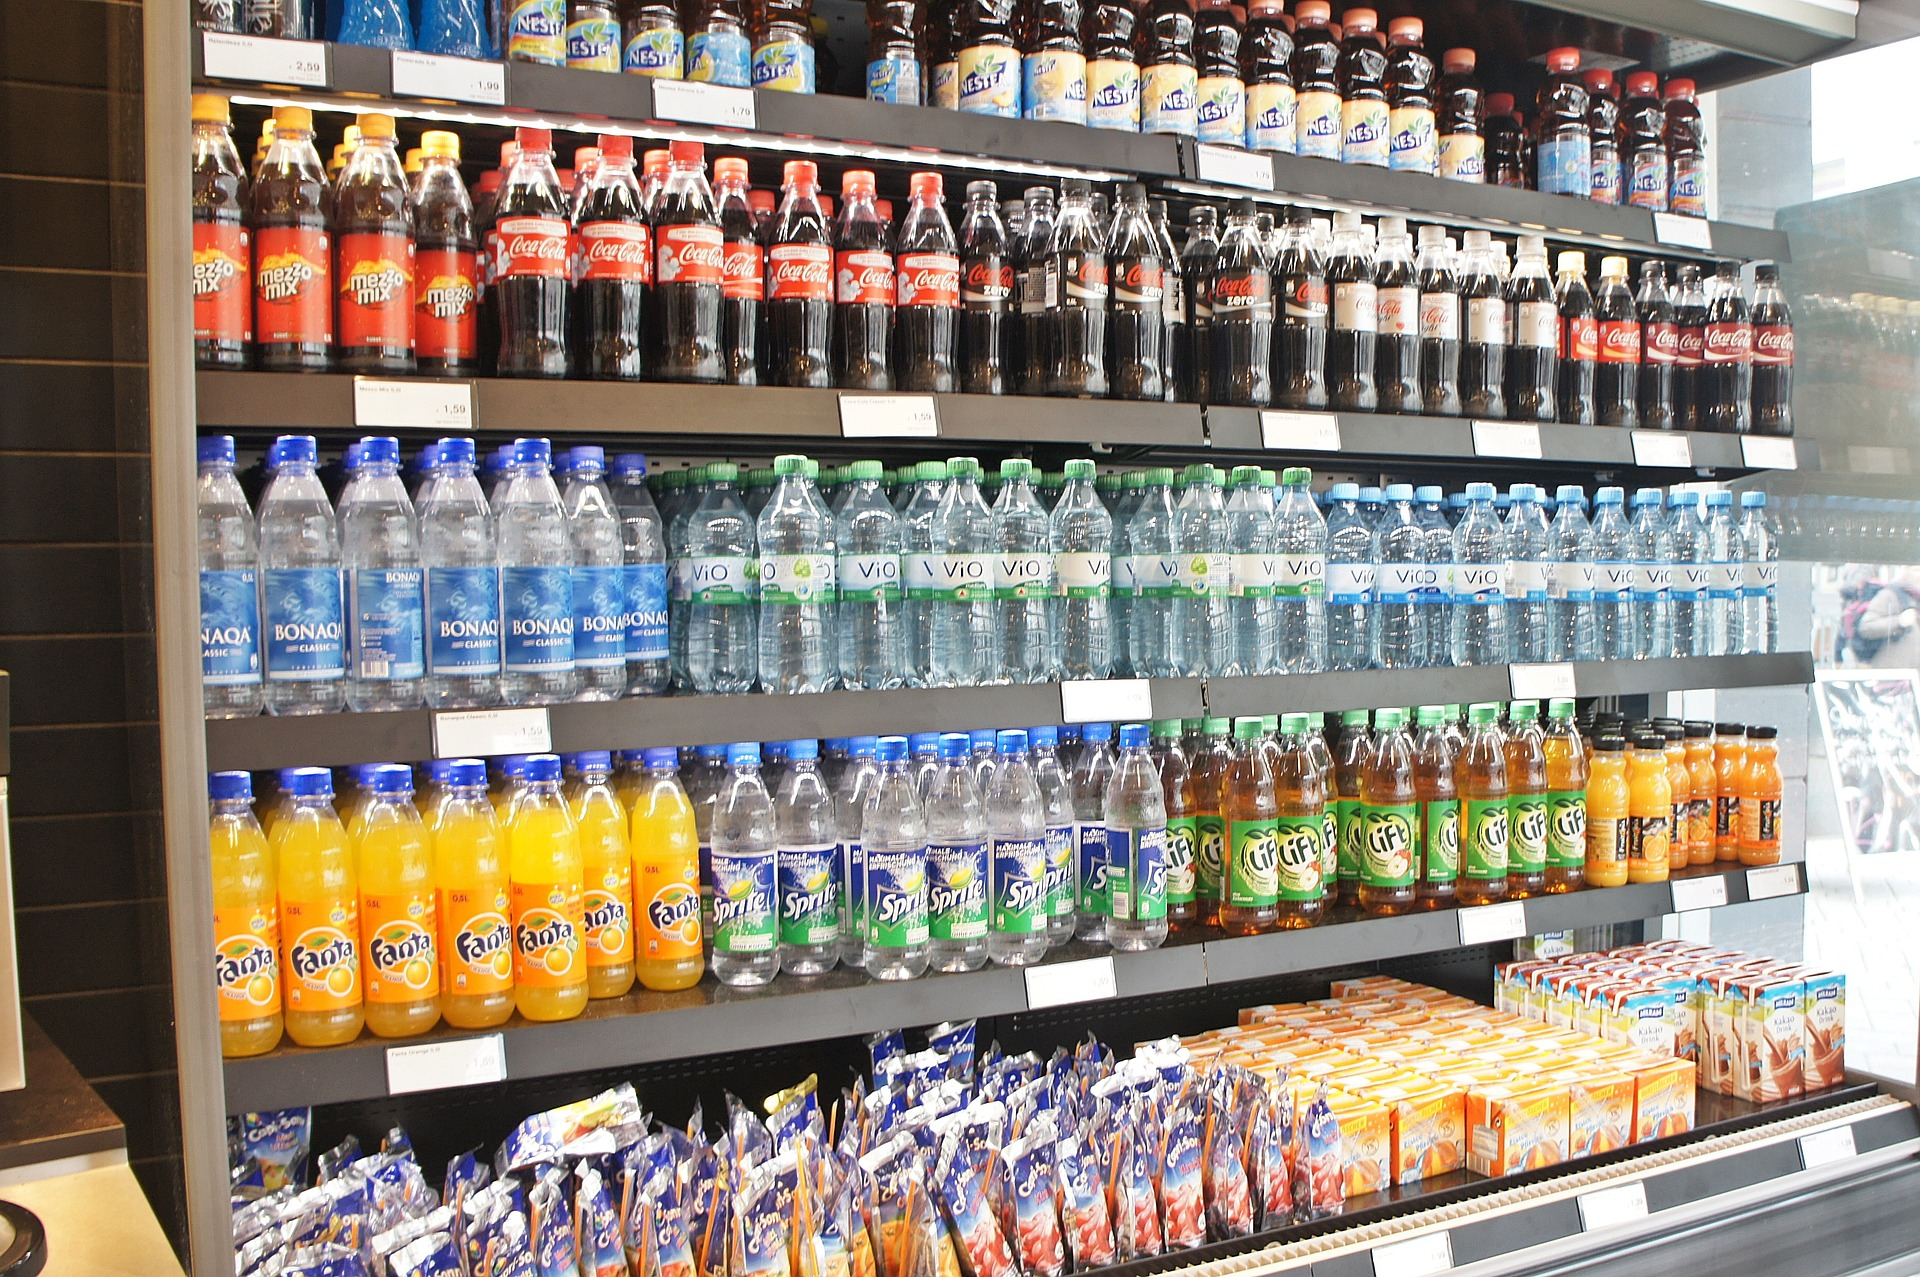 Expert Reaction Drinks Sweetened With High Fructose Corn Syrup Boost Gut Tumour Growth In Mice Scimex